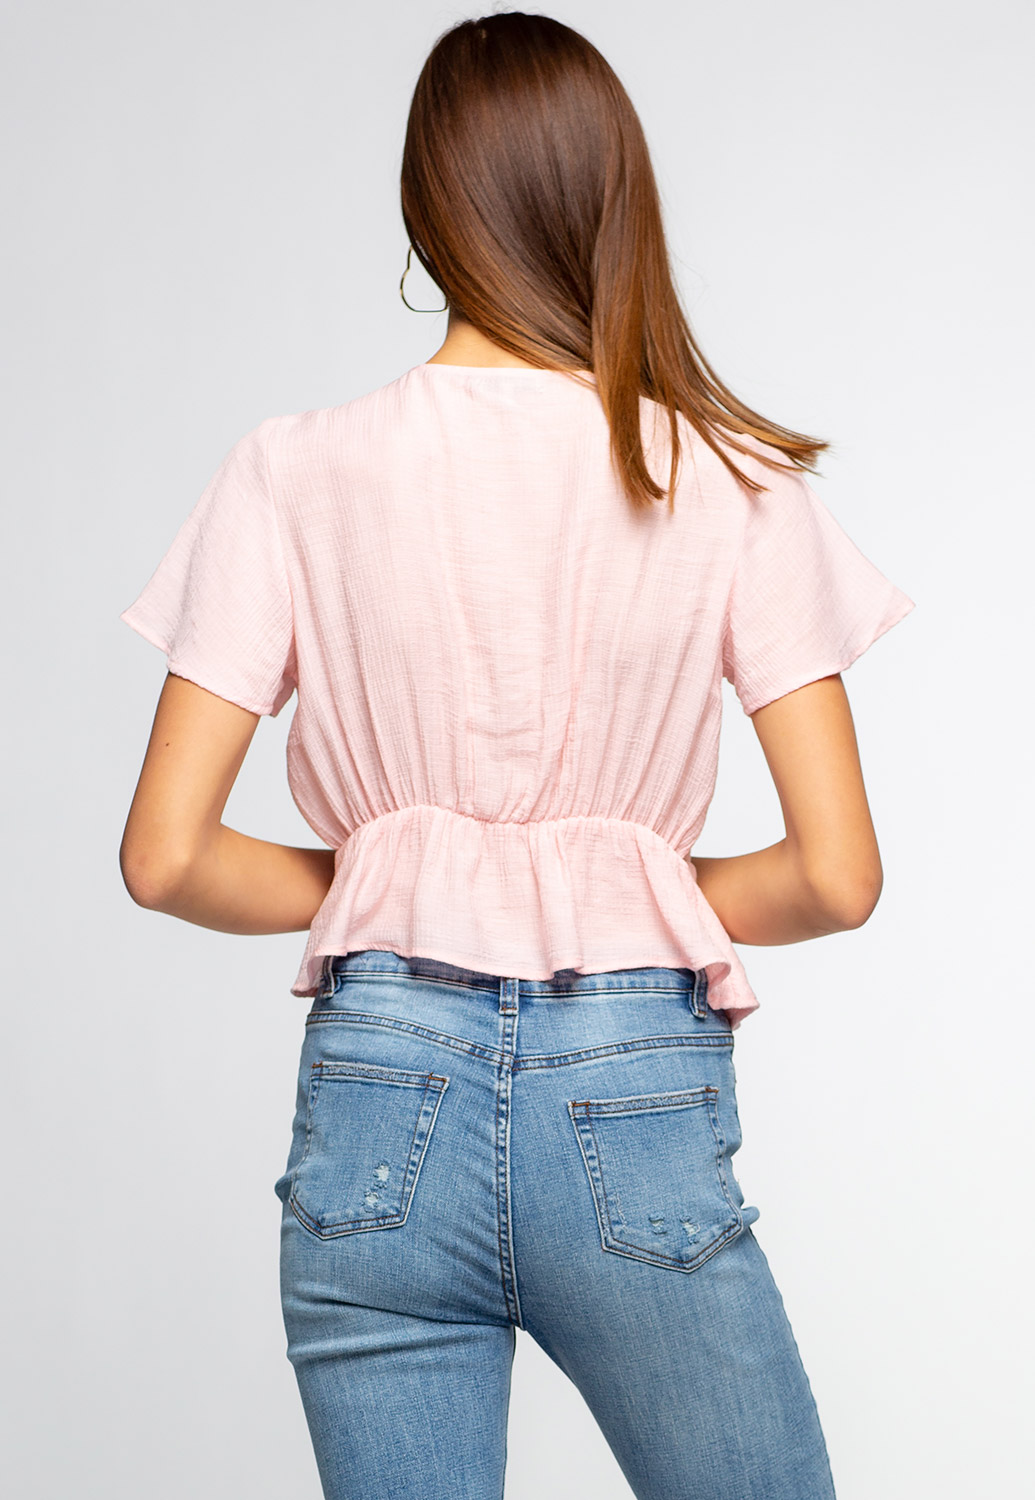 Kimono Inspired Side Ribbon Tie Top